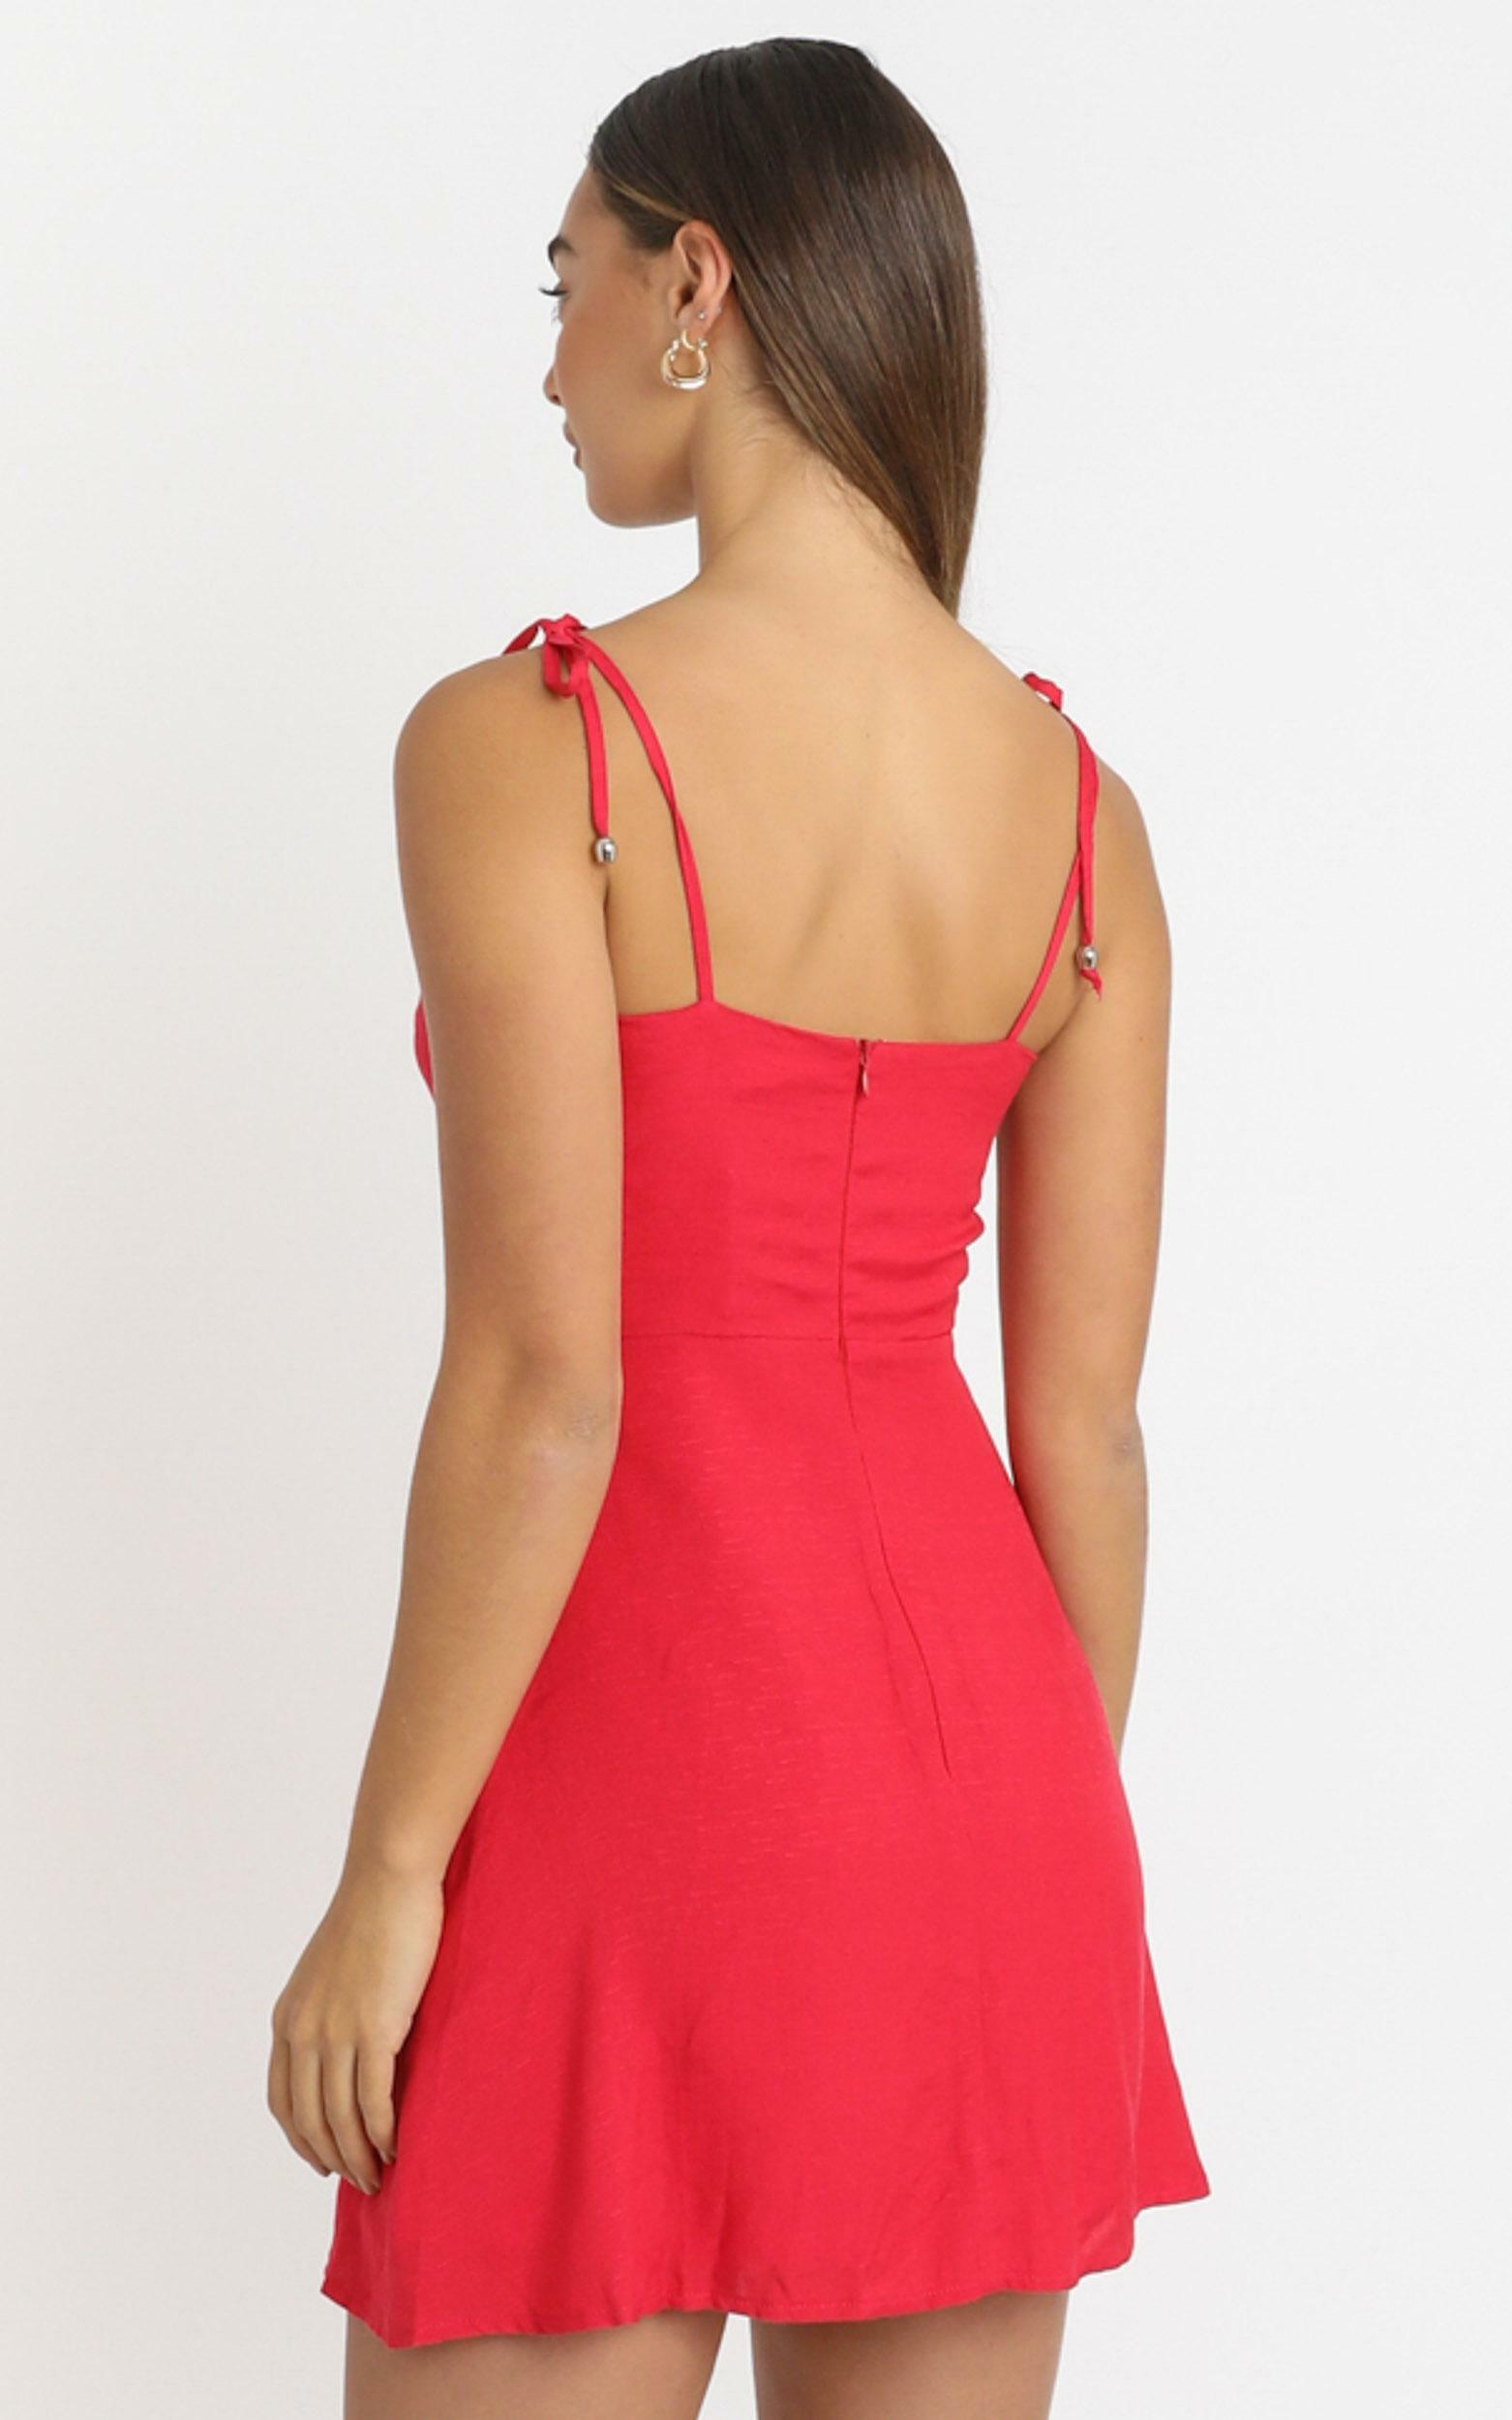 Afternoon Glow Dress in red - 20 (XXXXL), Red, hi-res image number null